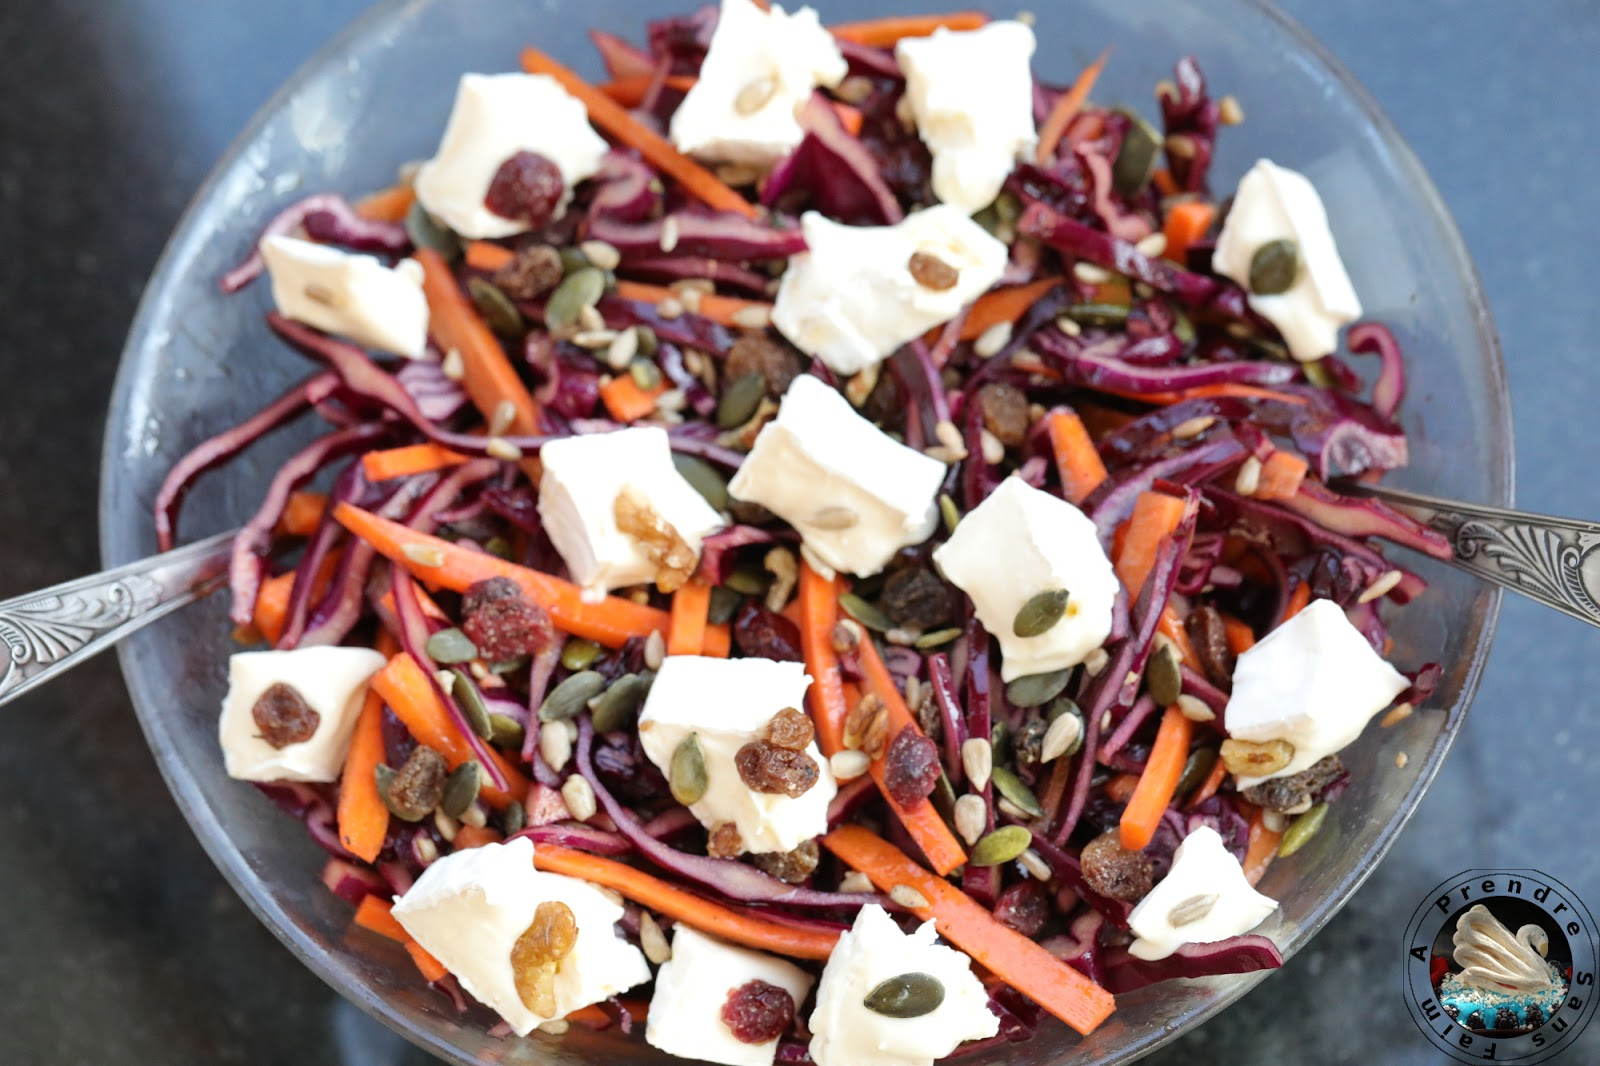 Salade croquante au fromage